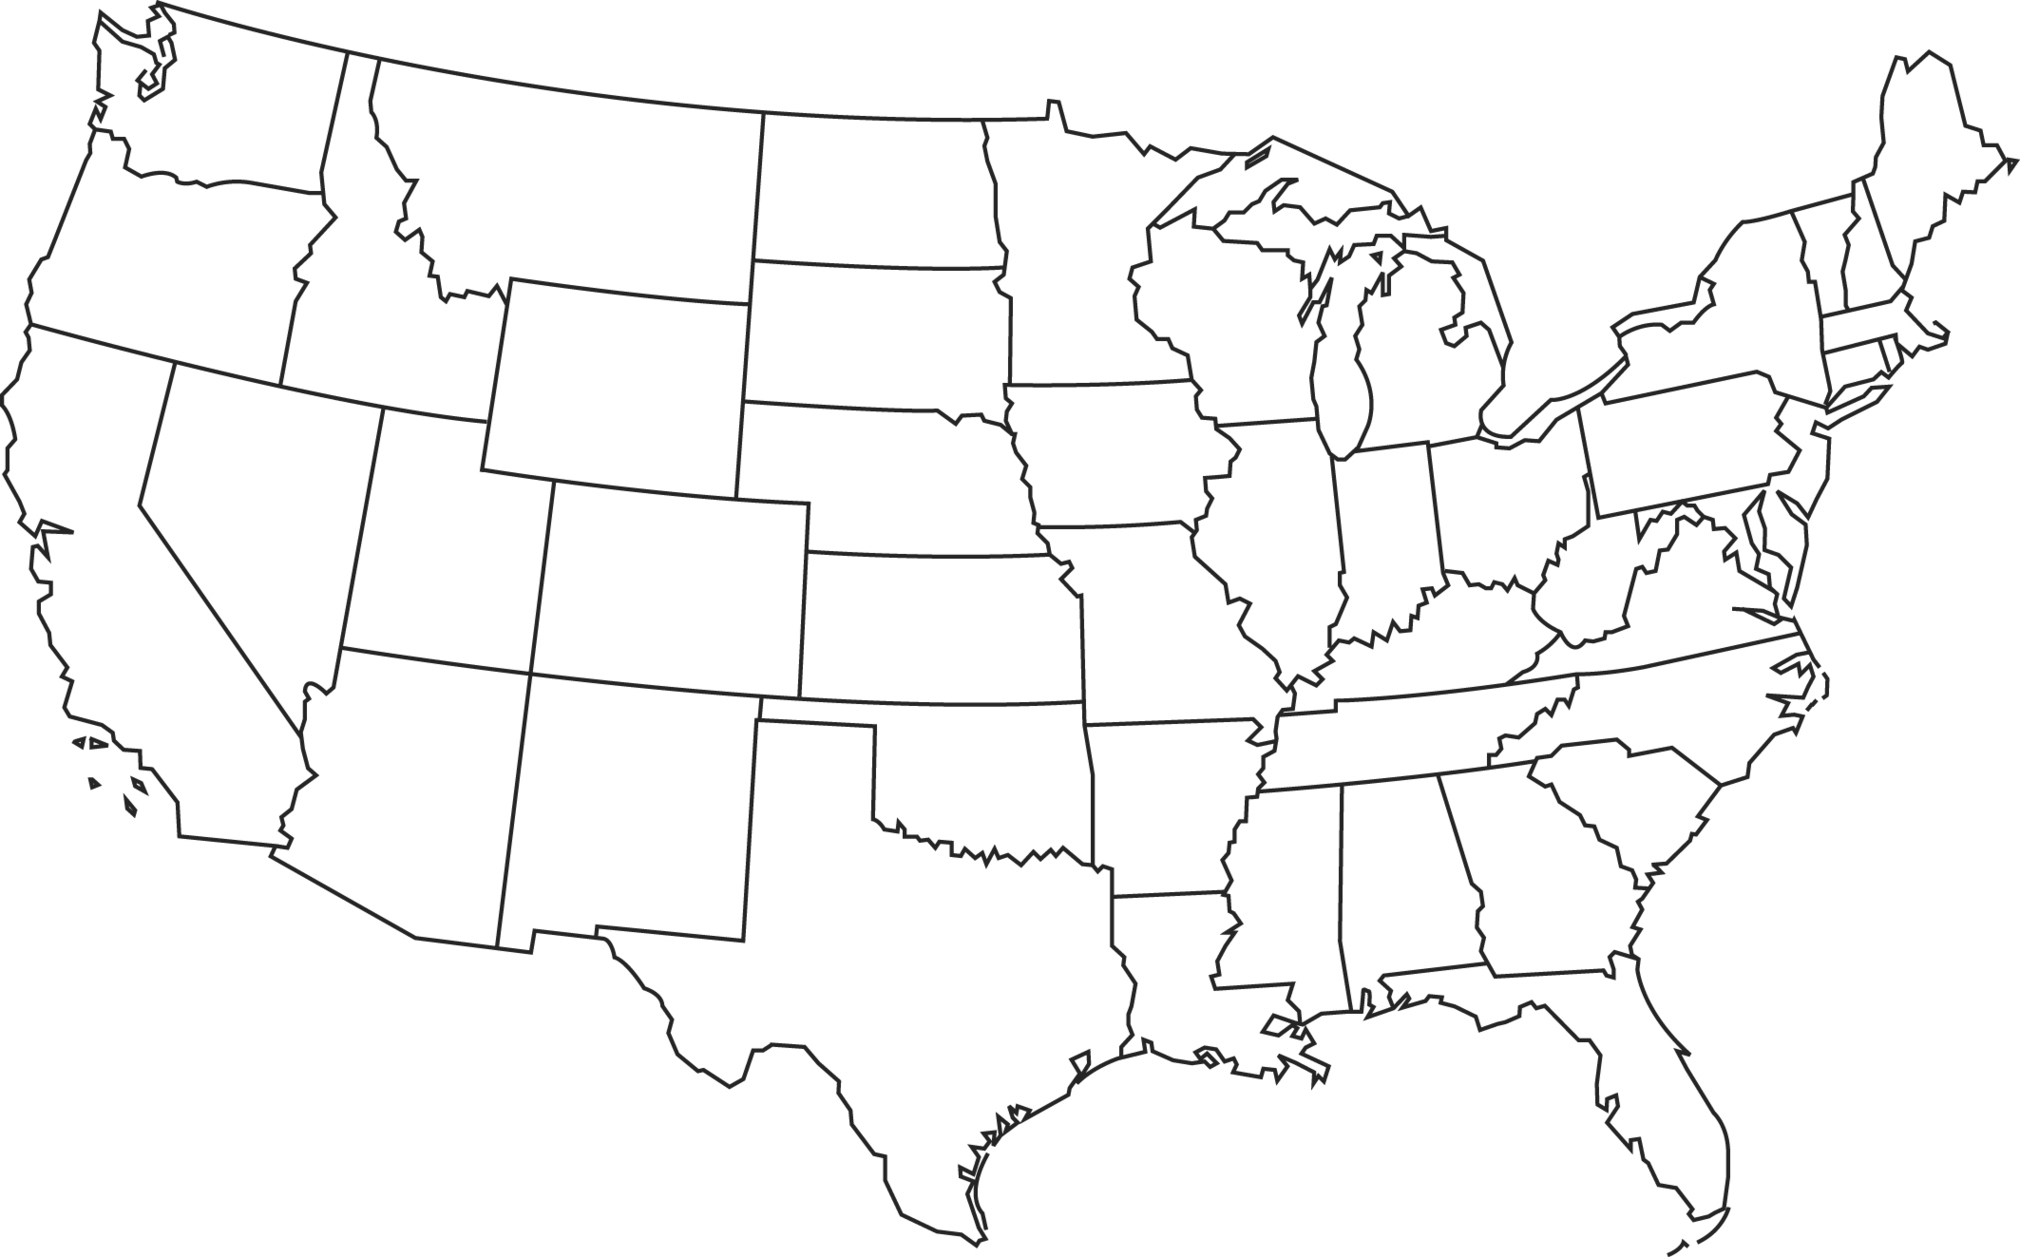 America clipart map usa, America map usa Transparent FREE ... on map of oceania quiz, map of greece quiz, map of latitude and longitude, us map quiz, states quiz, map of the world quiz, map of asia quiz, map of 50 states, map of middle east quiz, world physical map quiz, map of canada quiz, map of israel quiz, usa geography map quiz, map of middle america quiz, map of venezuela quiz, map of central america quiz, map of north america quiz, map of africa quiz, map of europe quiz, map of countries quiz,